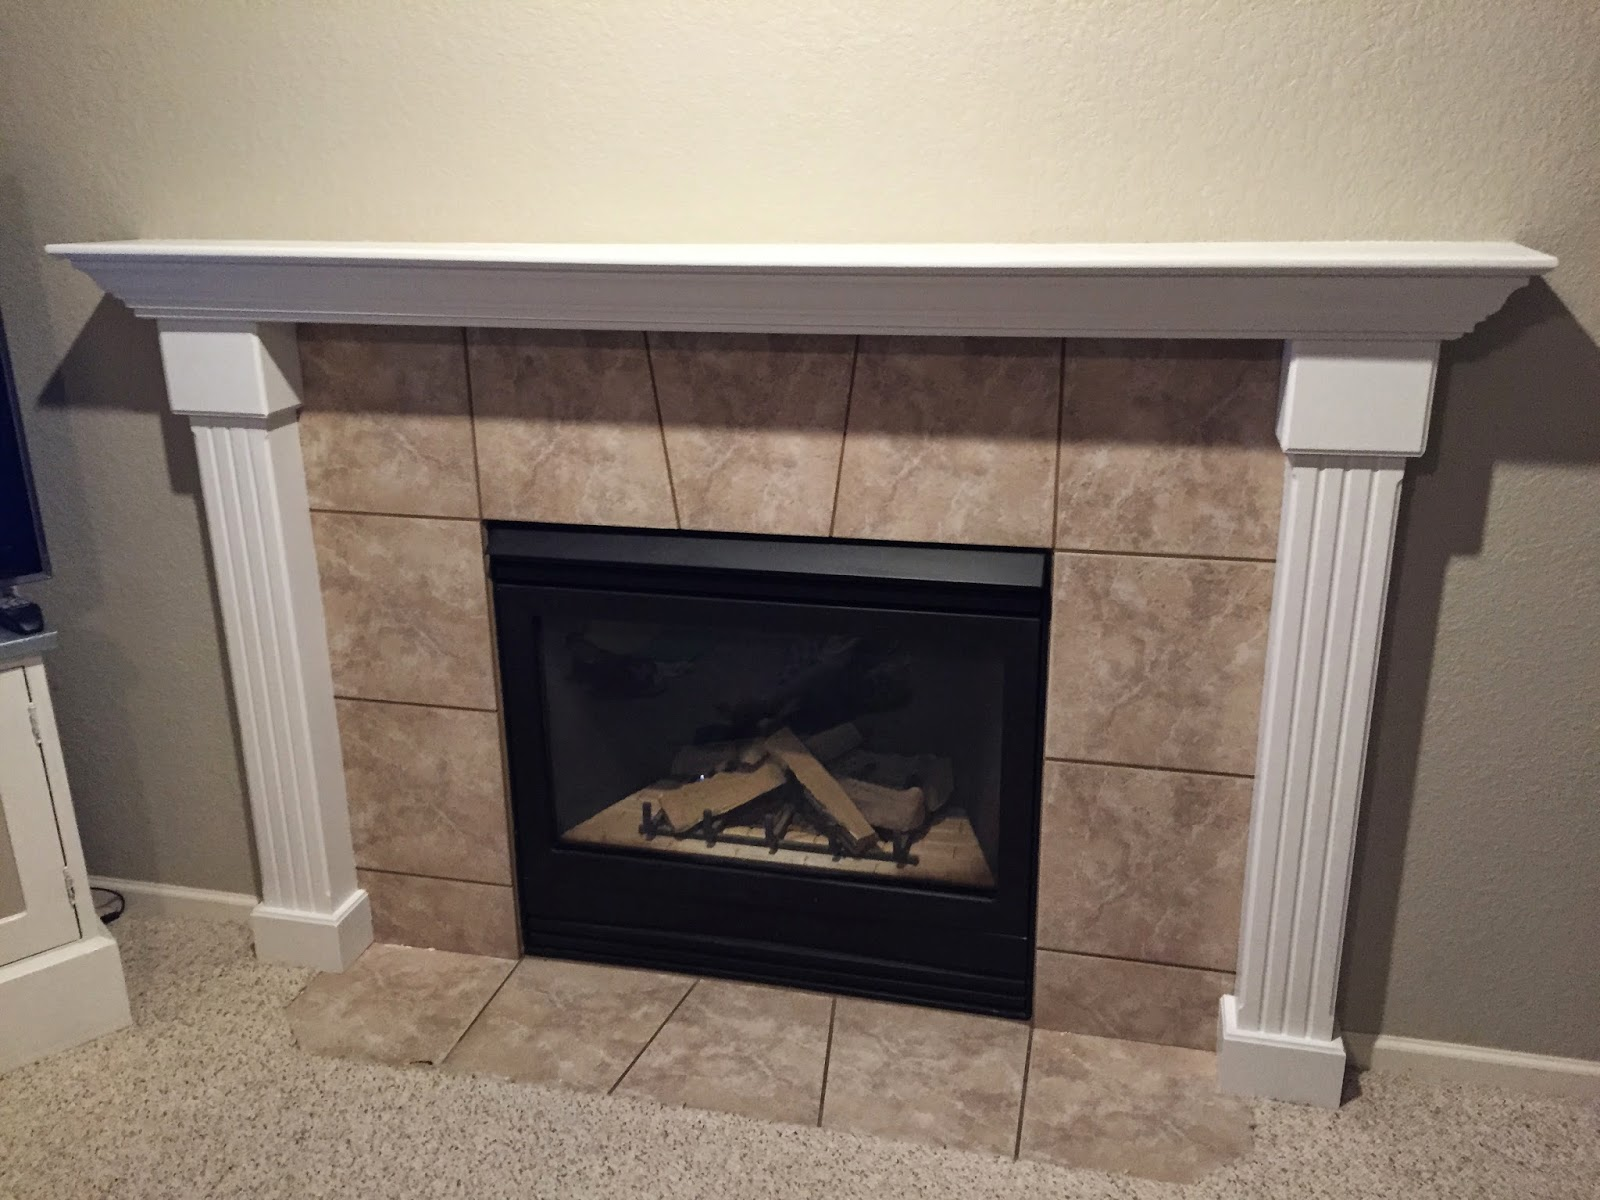 Heat Resistant Paint Fireplace Heat Resistant Tiles For Fireplaces